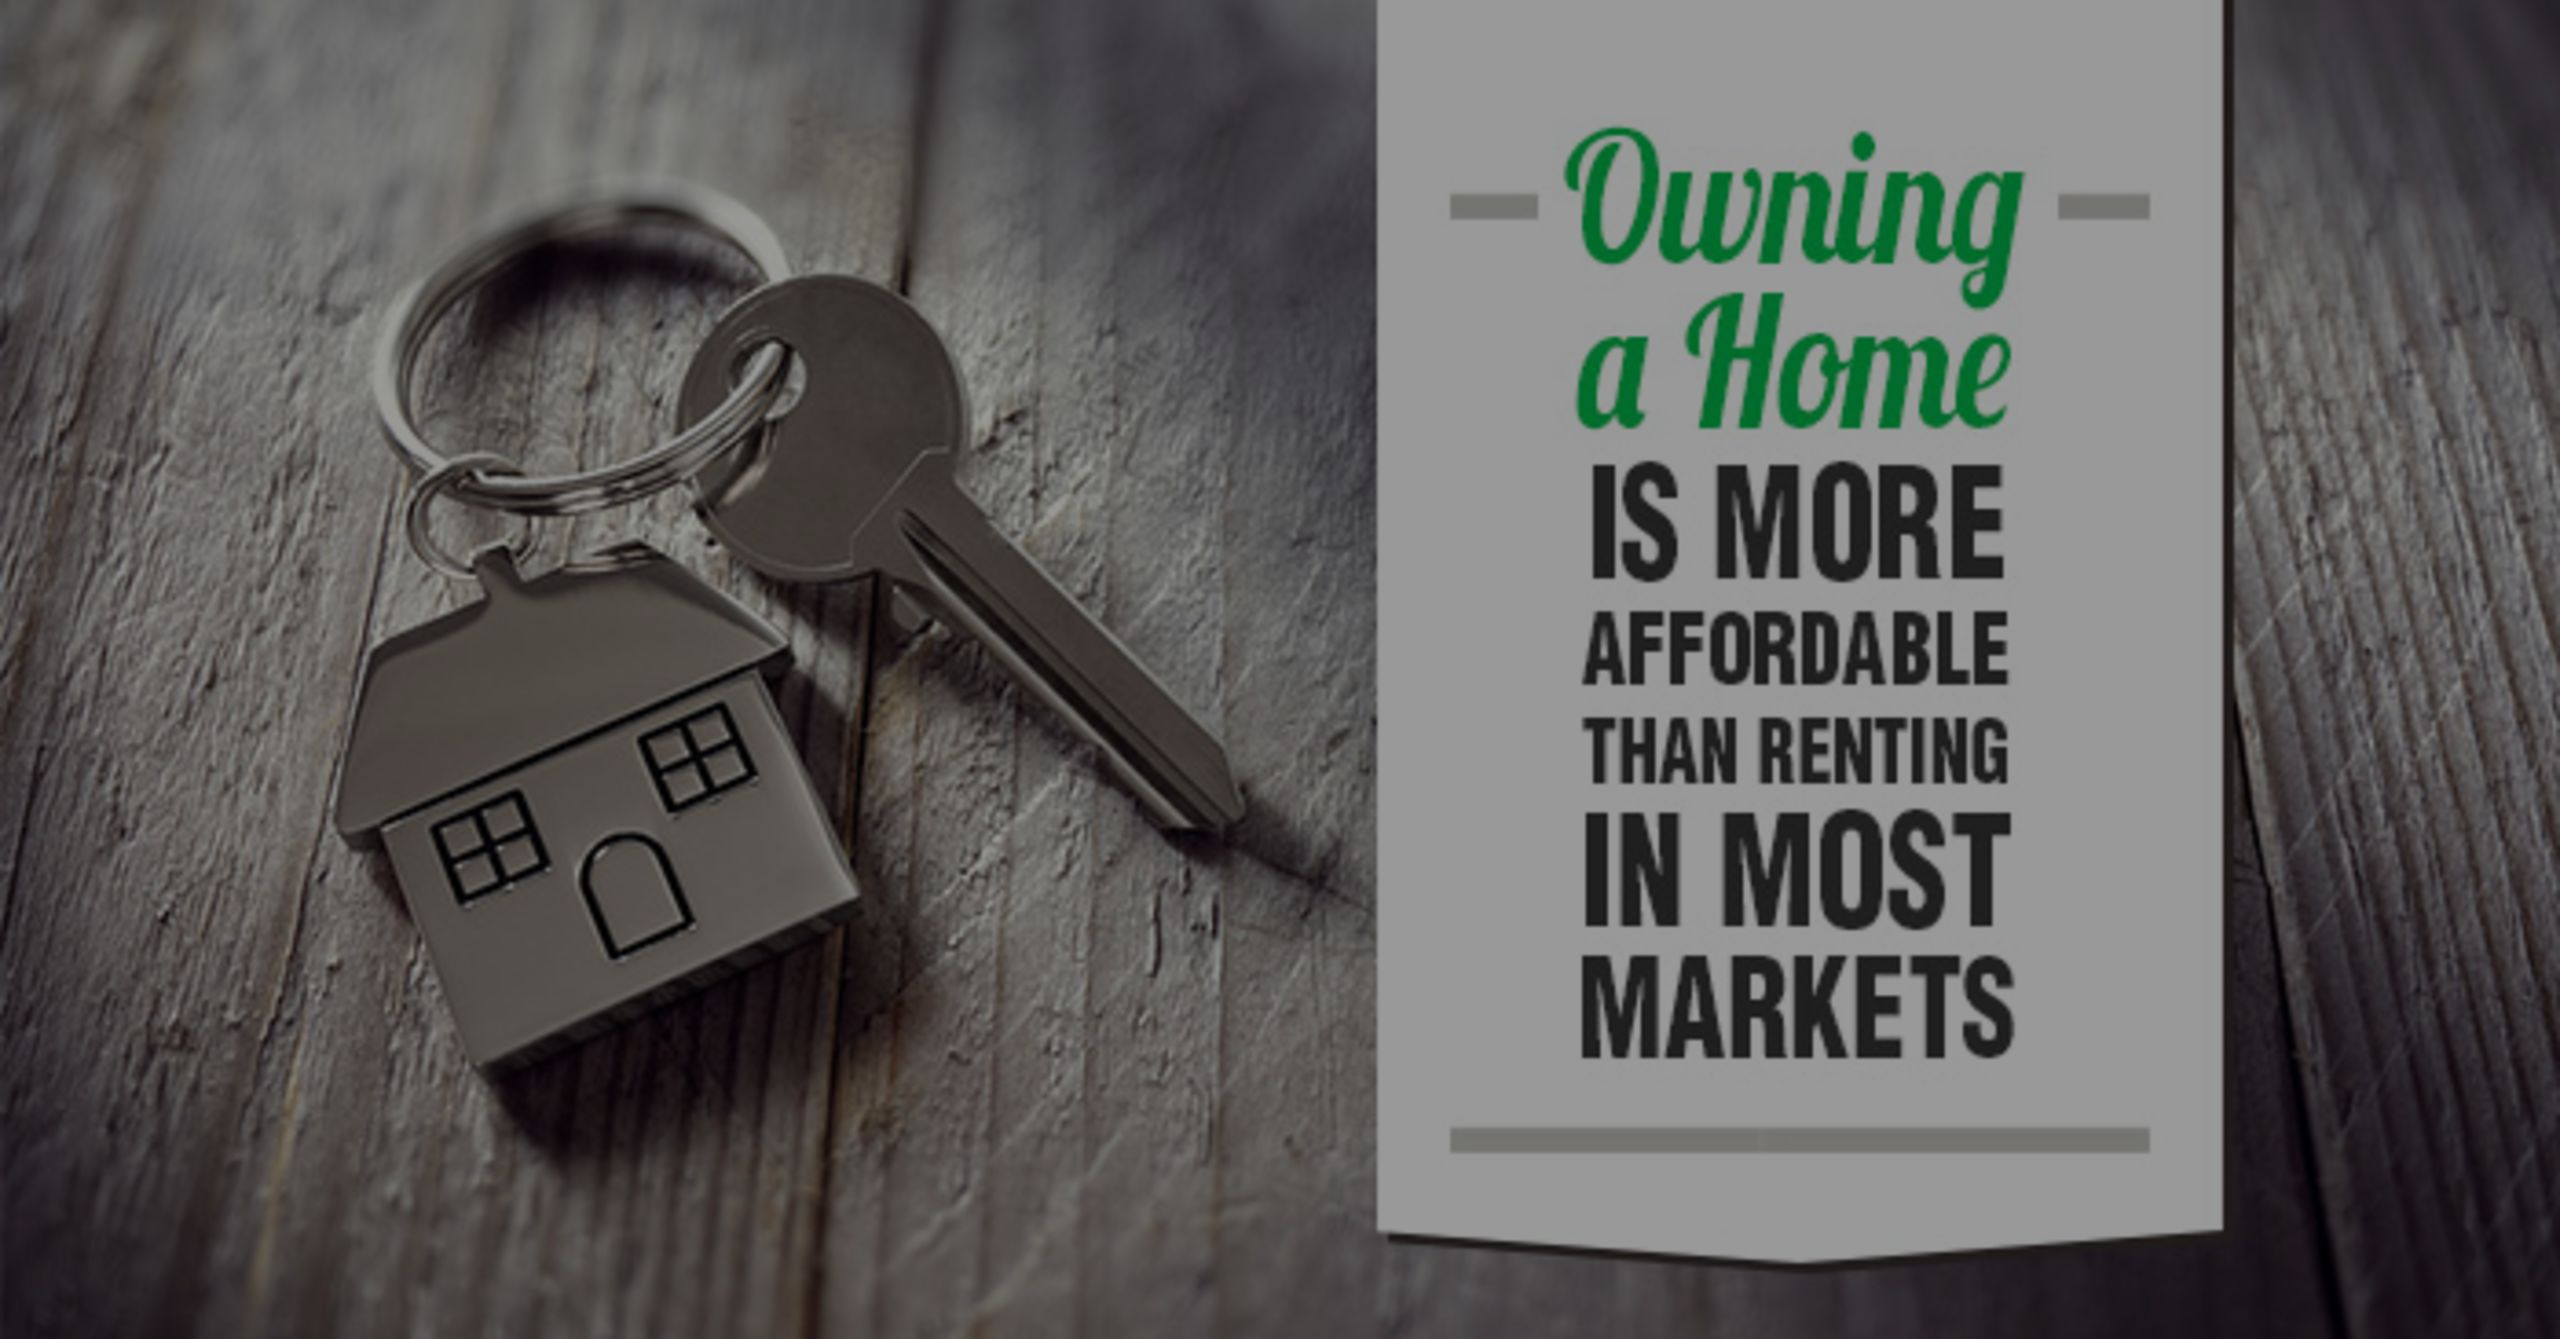 Owning A Home Is More Affordable Than Renting In Most Markets In The US